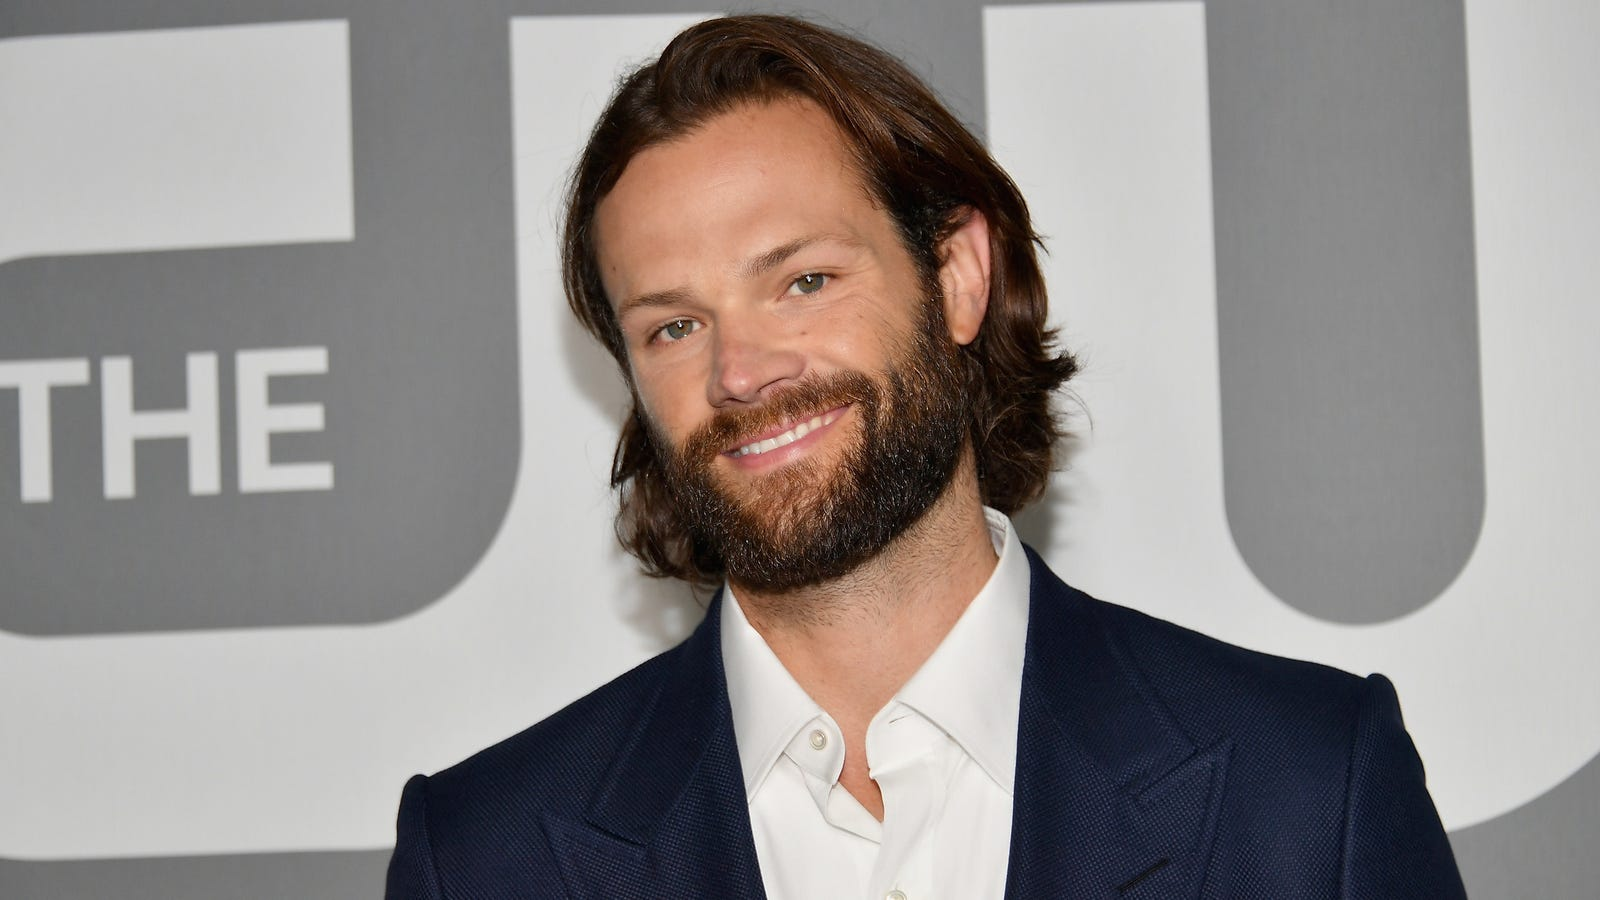 Good thing he can grow a beard, because Jared Padalecki is the new Walker, Texas Ranger